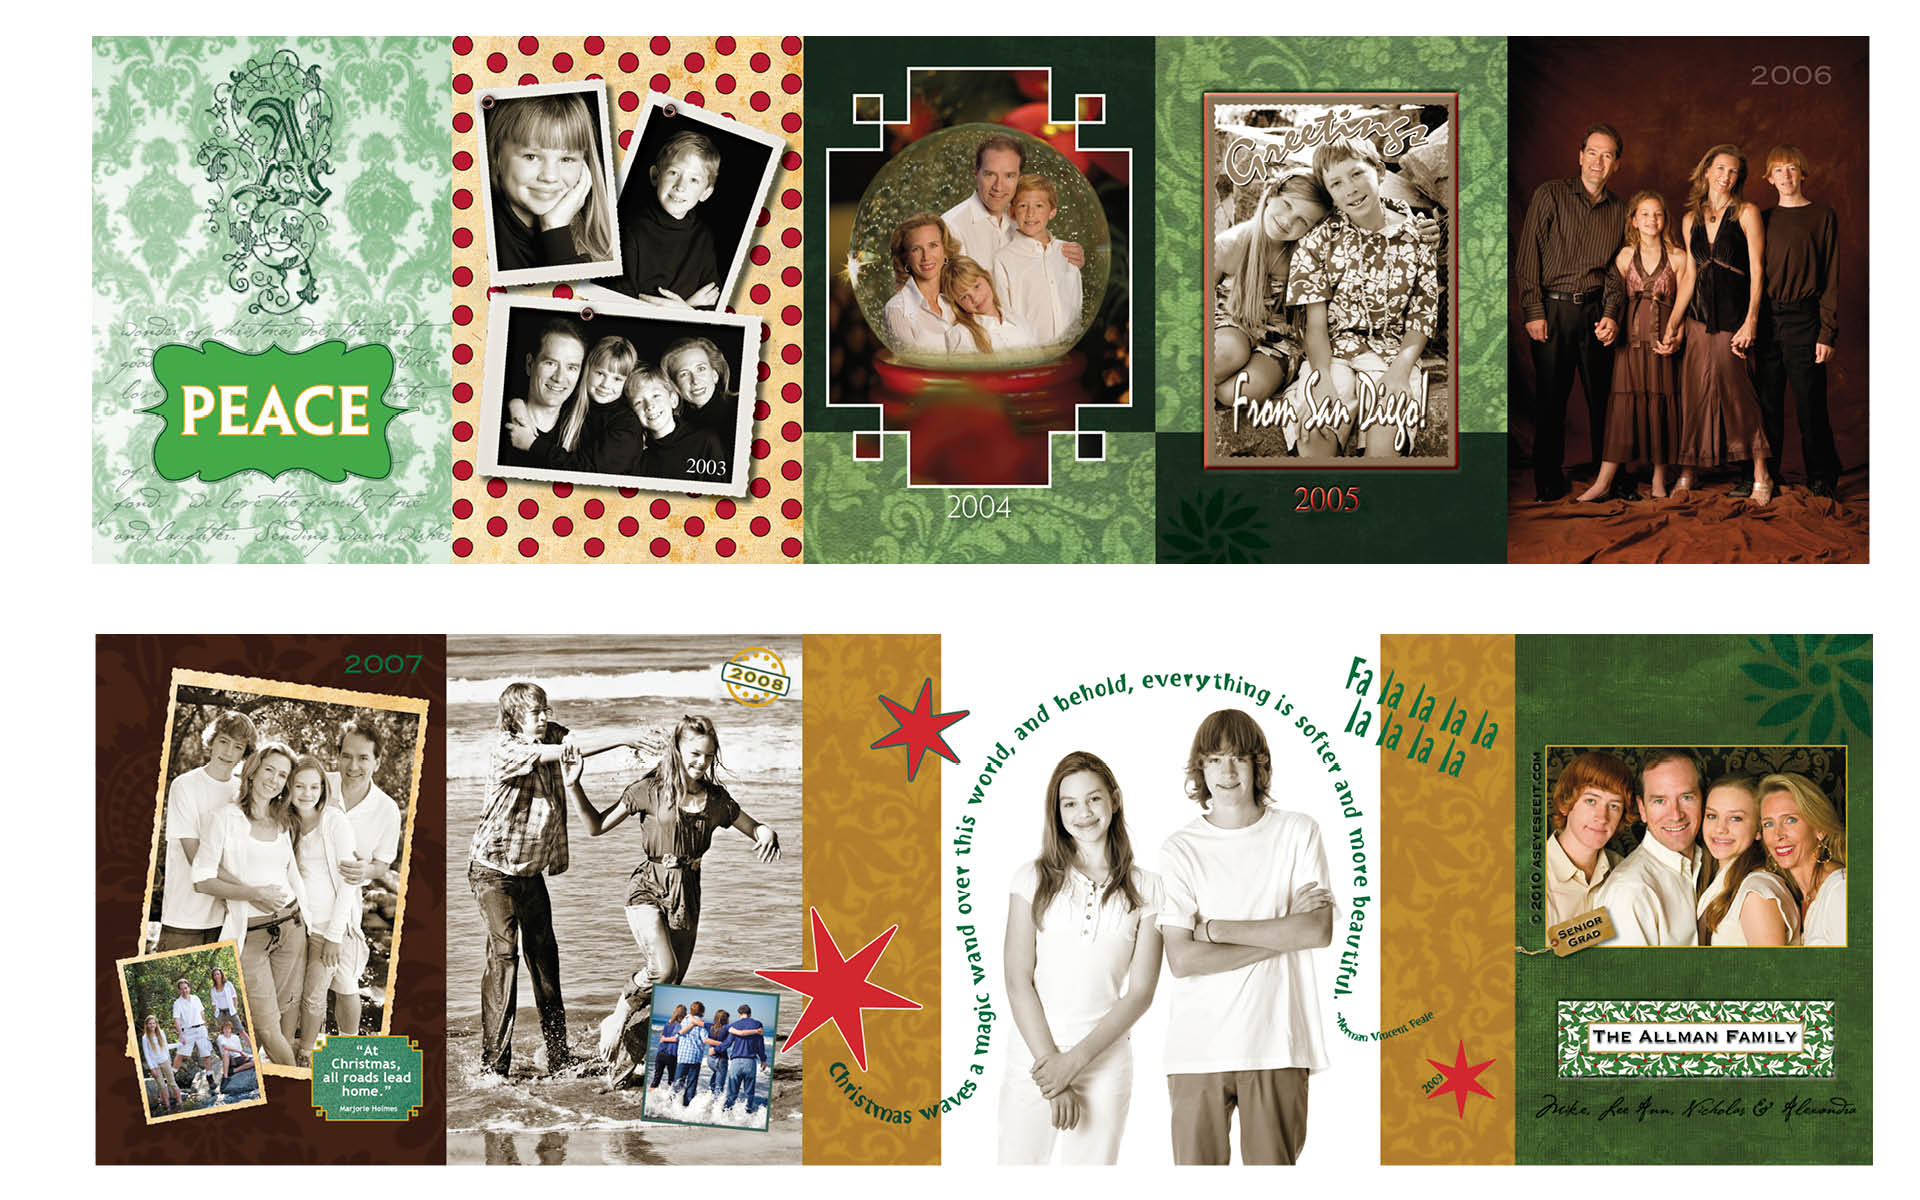 4x5.5 Accordian Fold Card